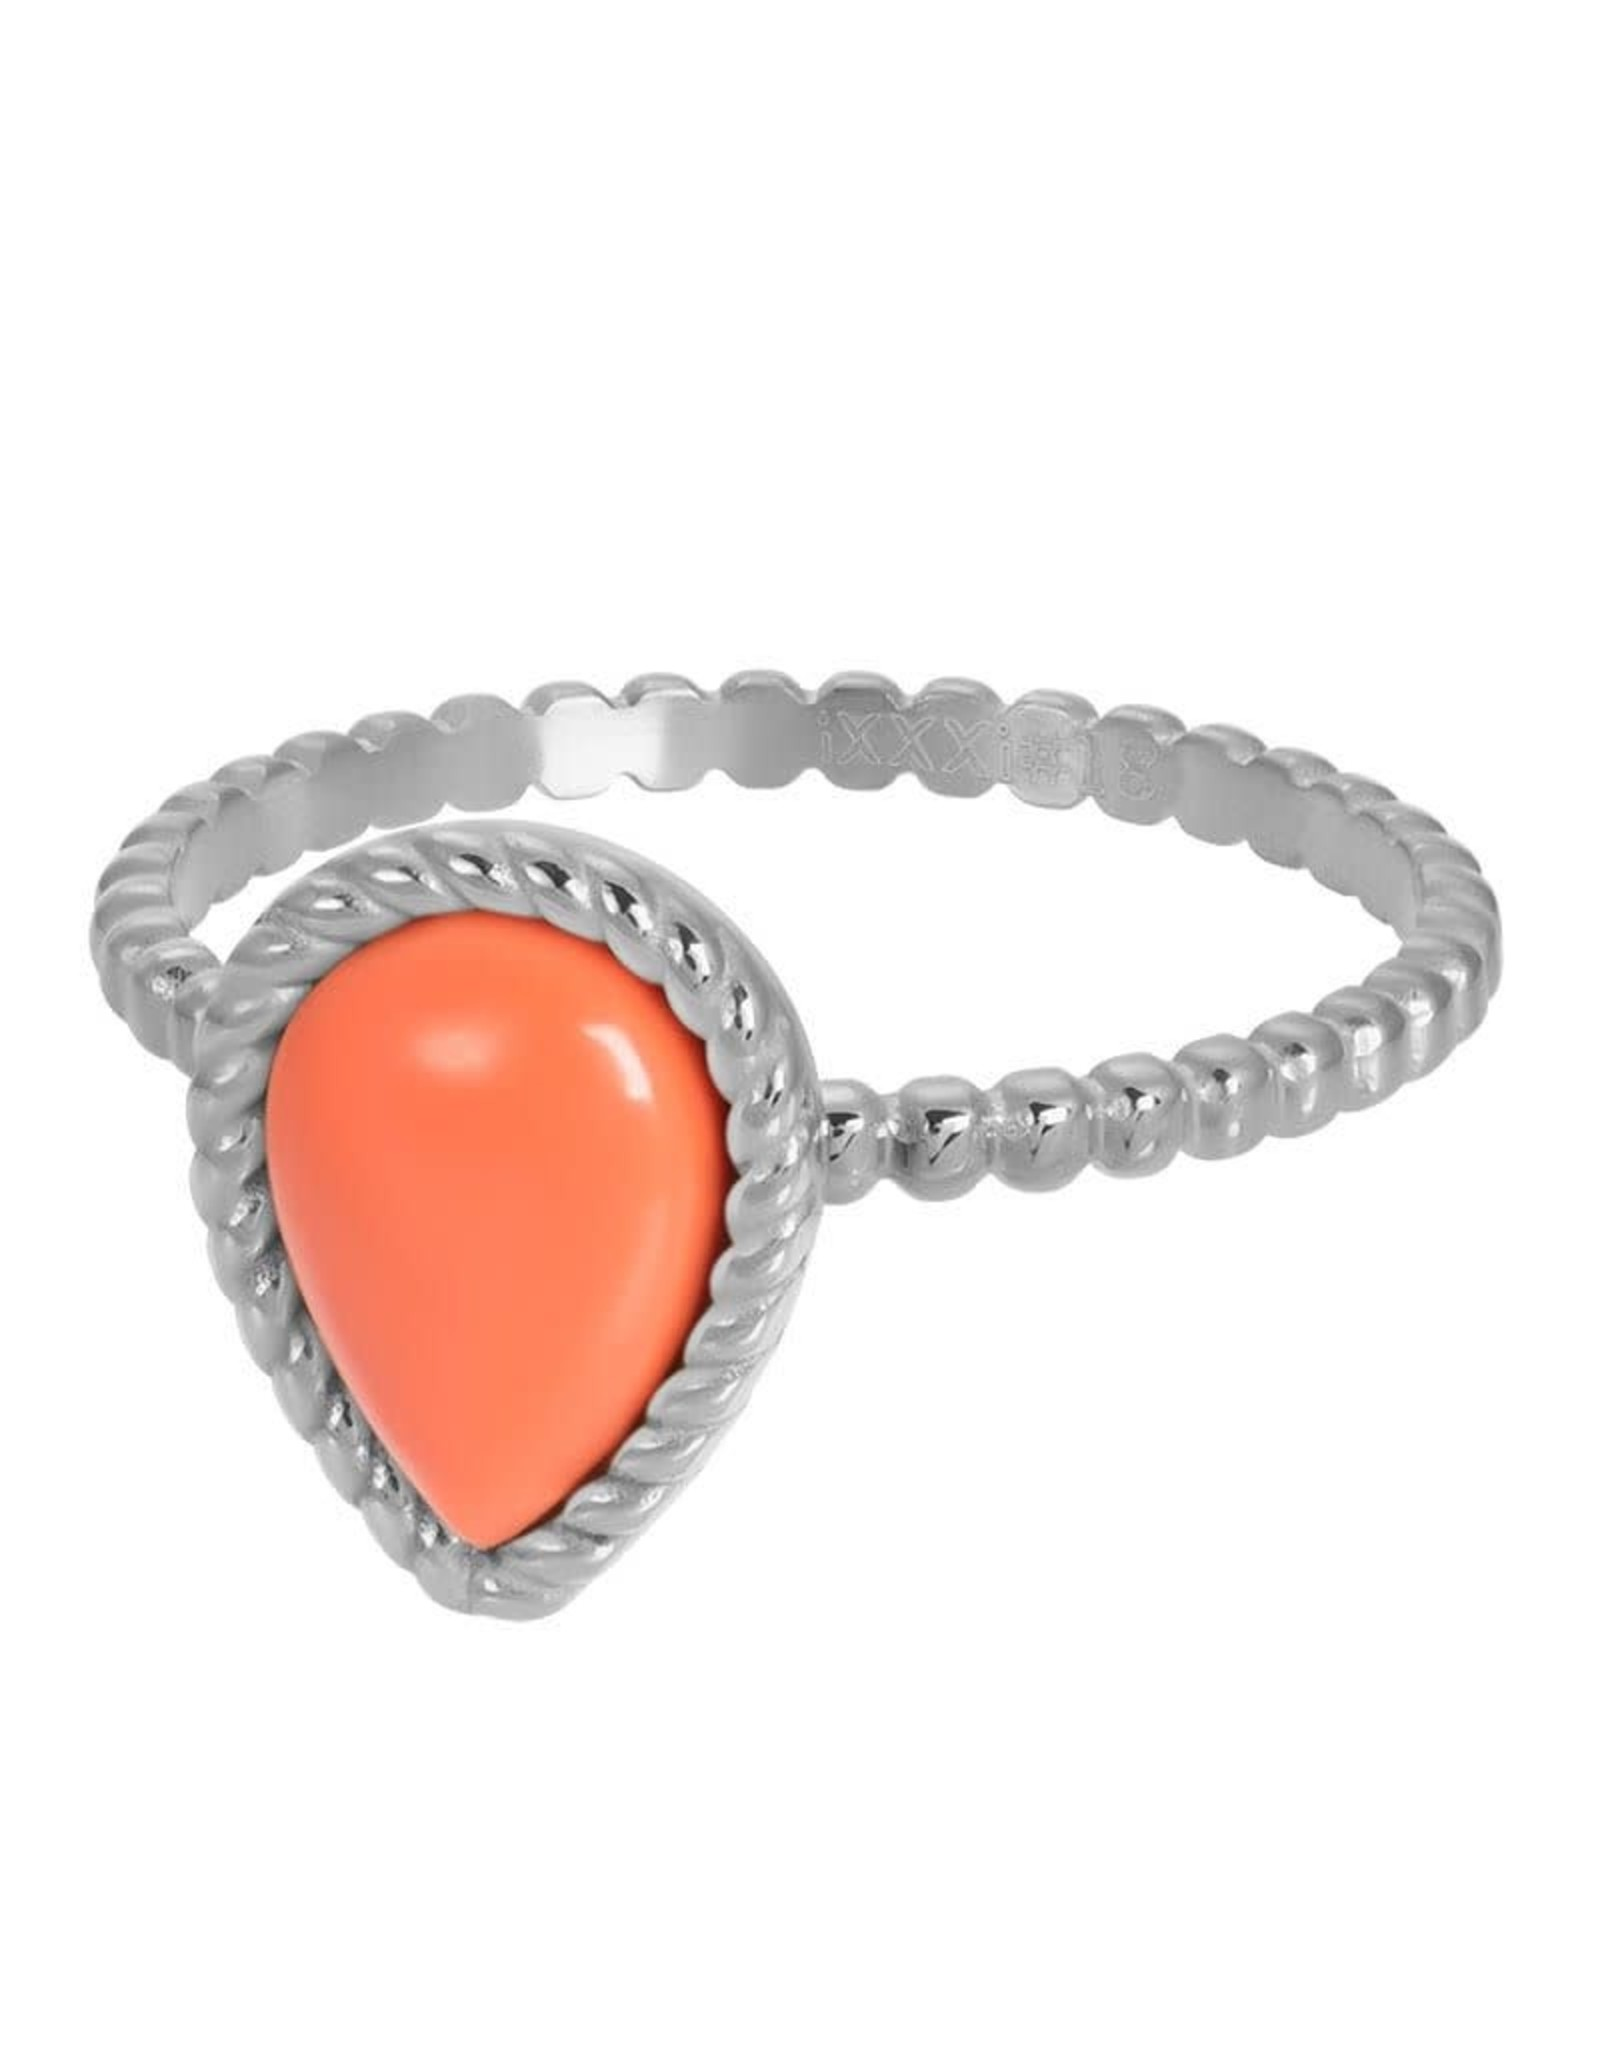 iXXXi Jewelry iXXXi vulring Magic coral - staal